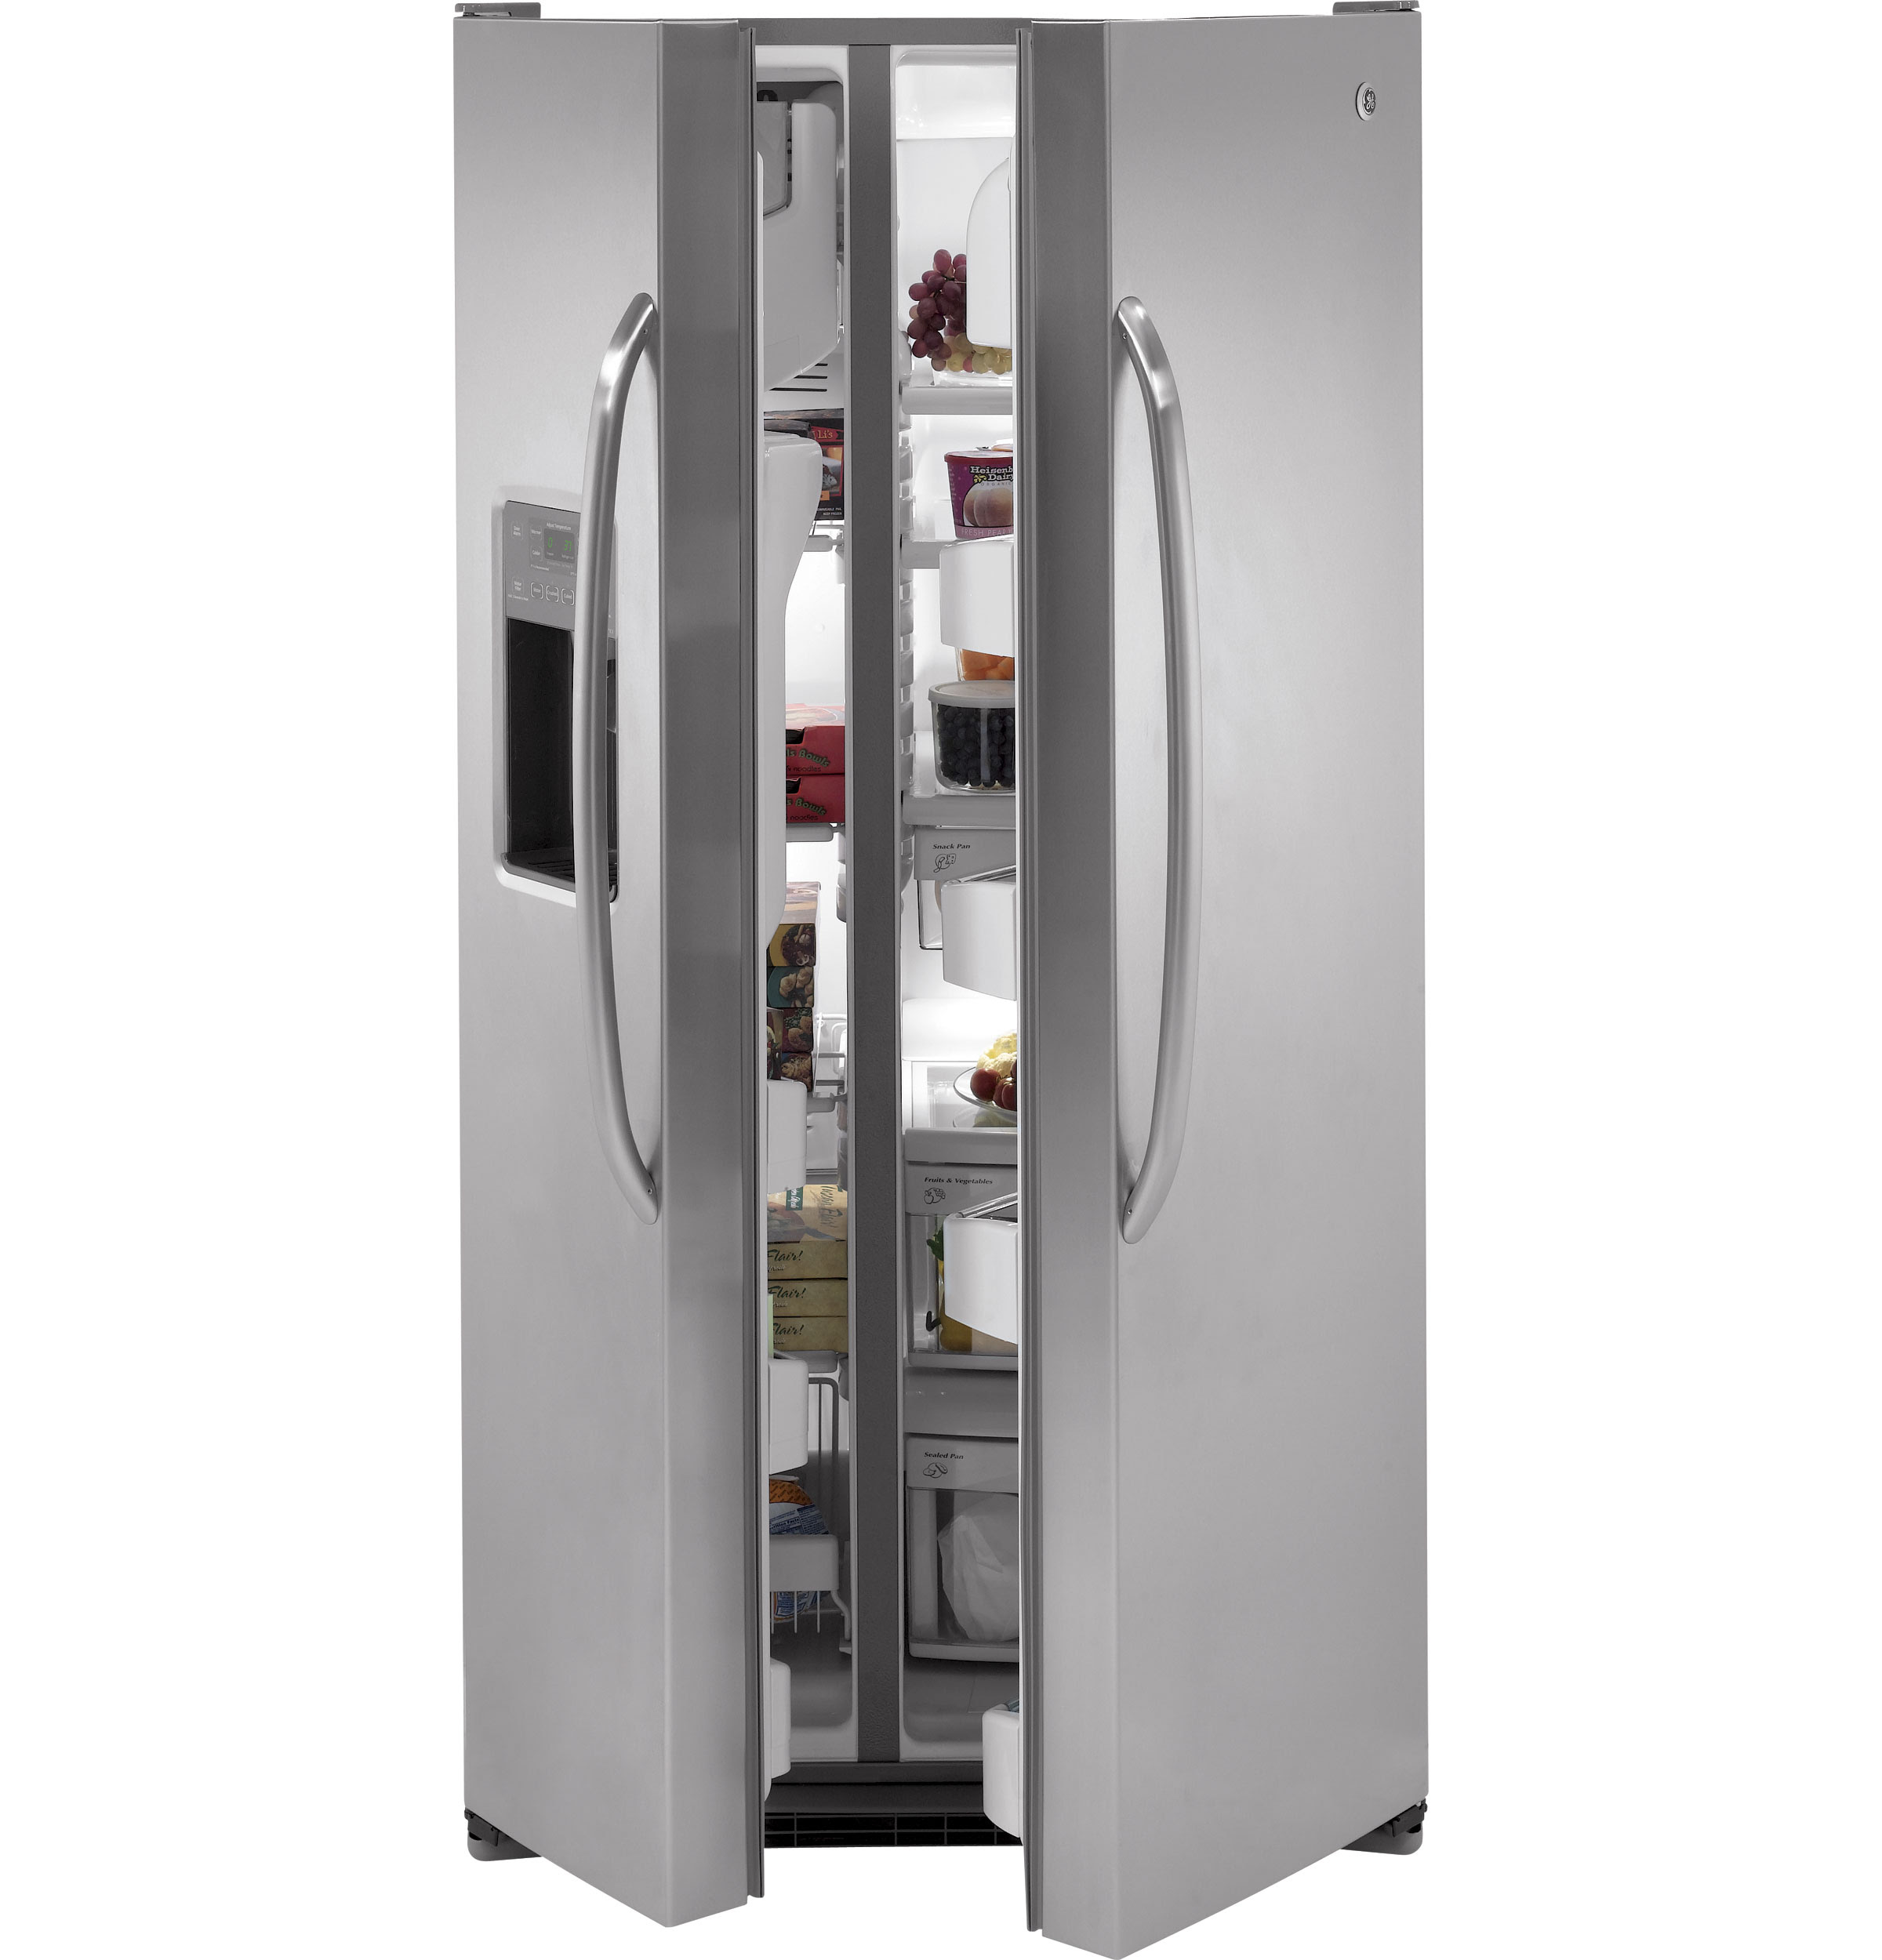 Adora series by GE 25 9 Cu Ft Side By Side Refrigerator